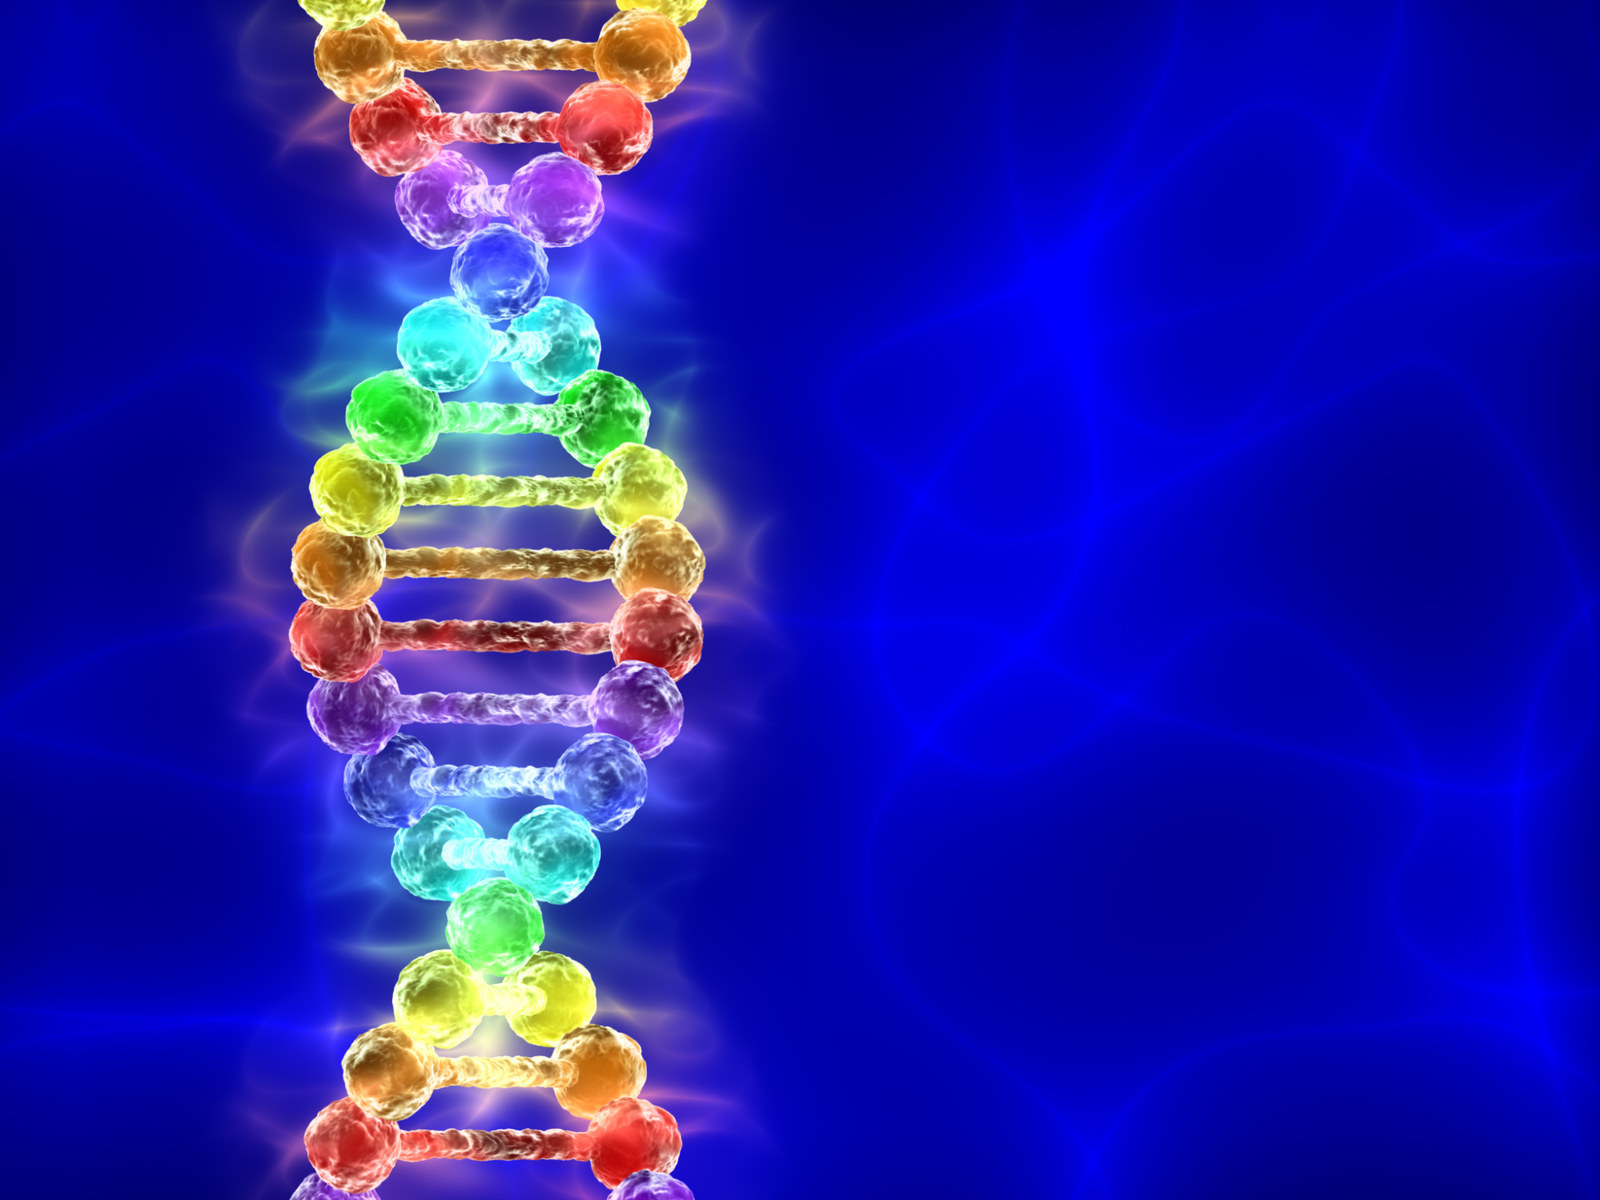 Epigenetic Test Can Predict Homosexuality, Controversial Study Claims